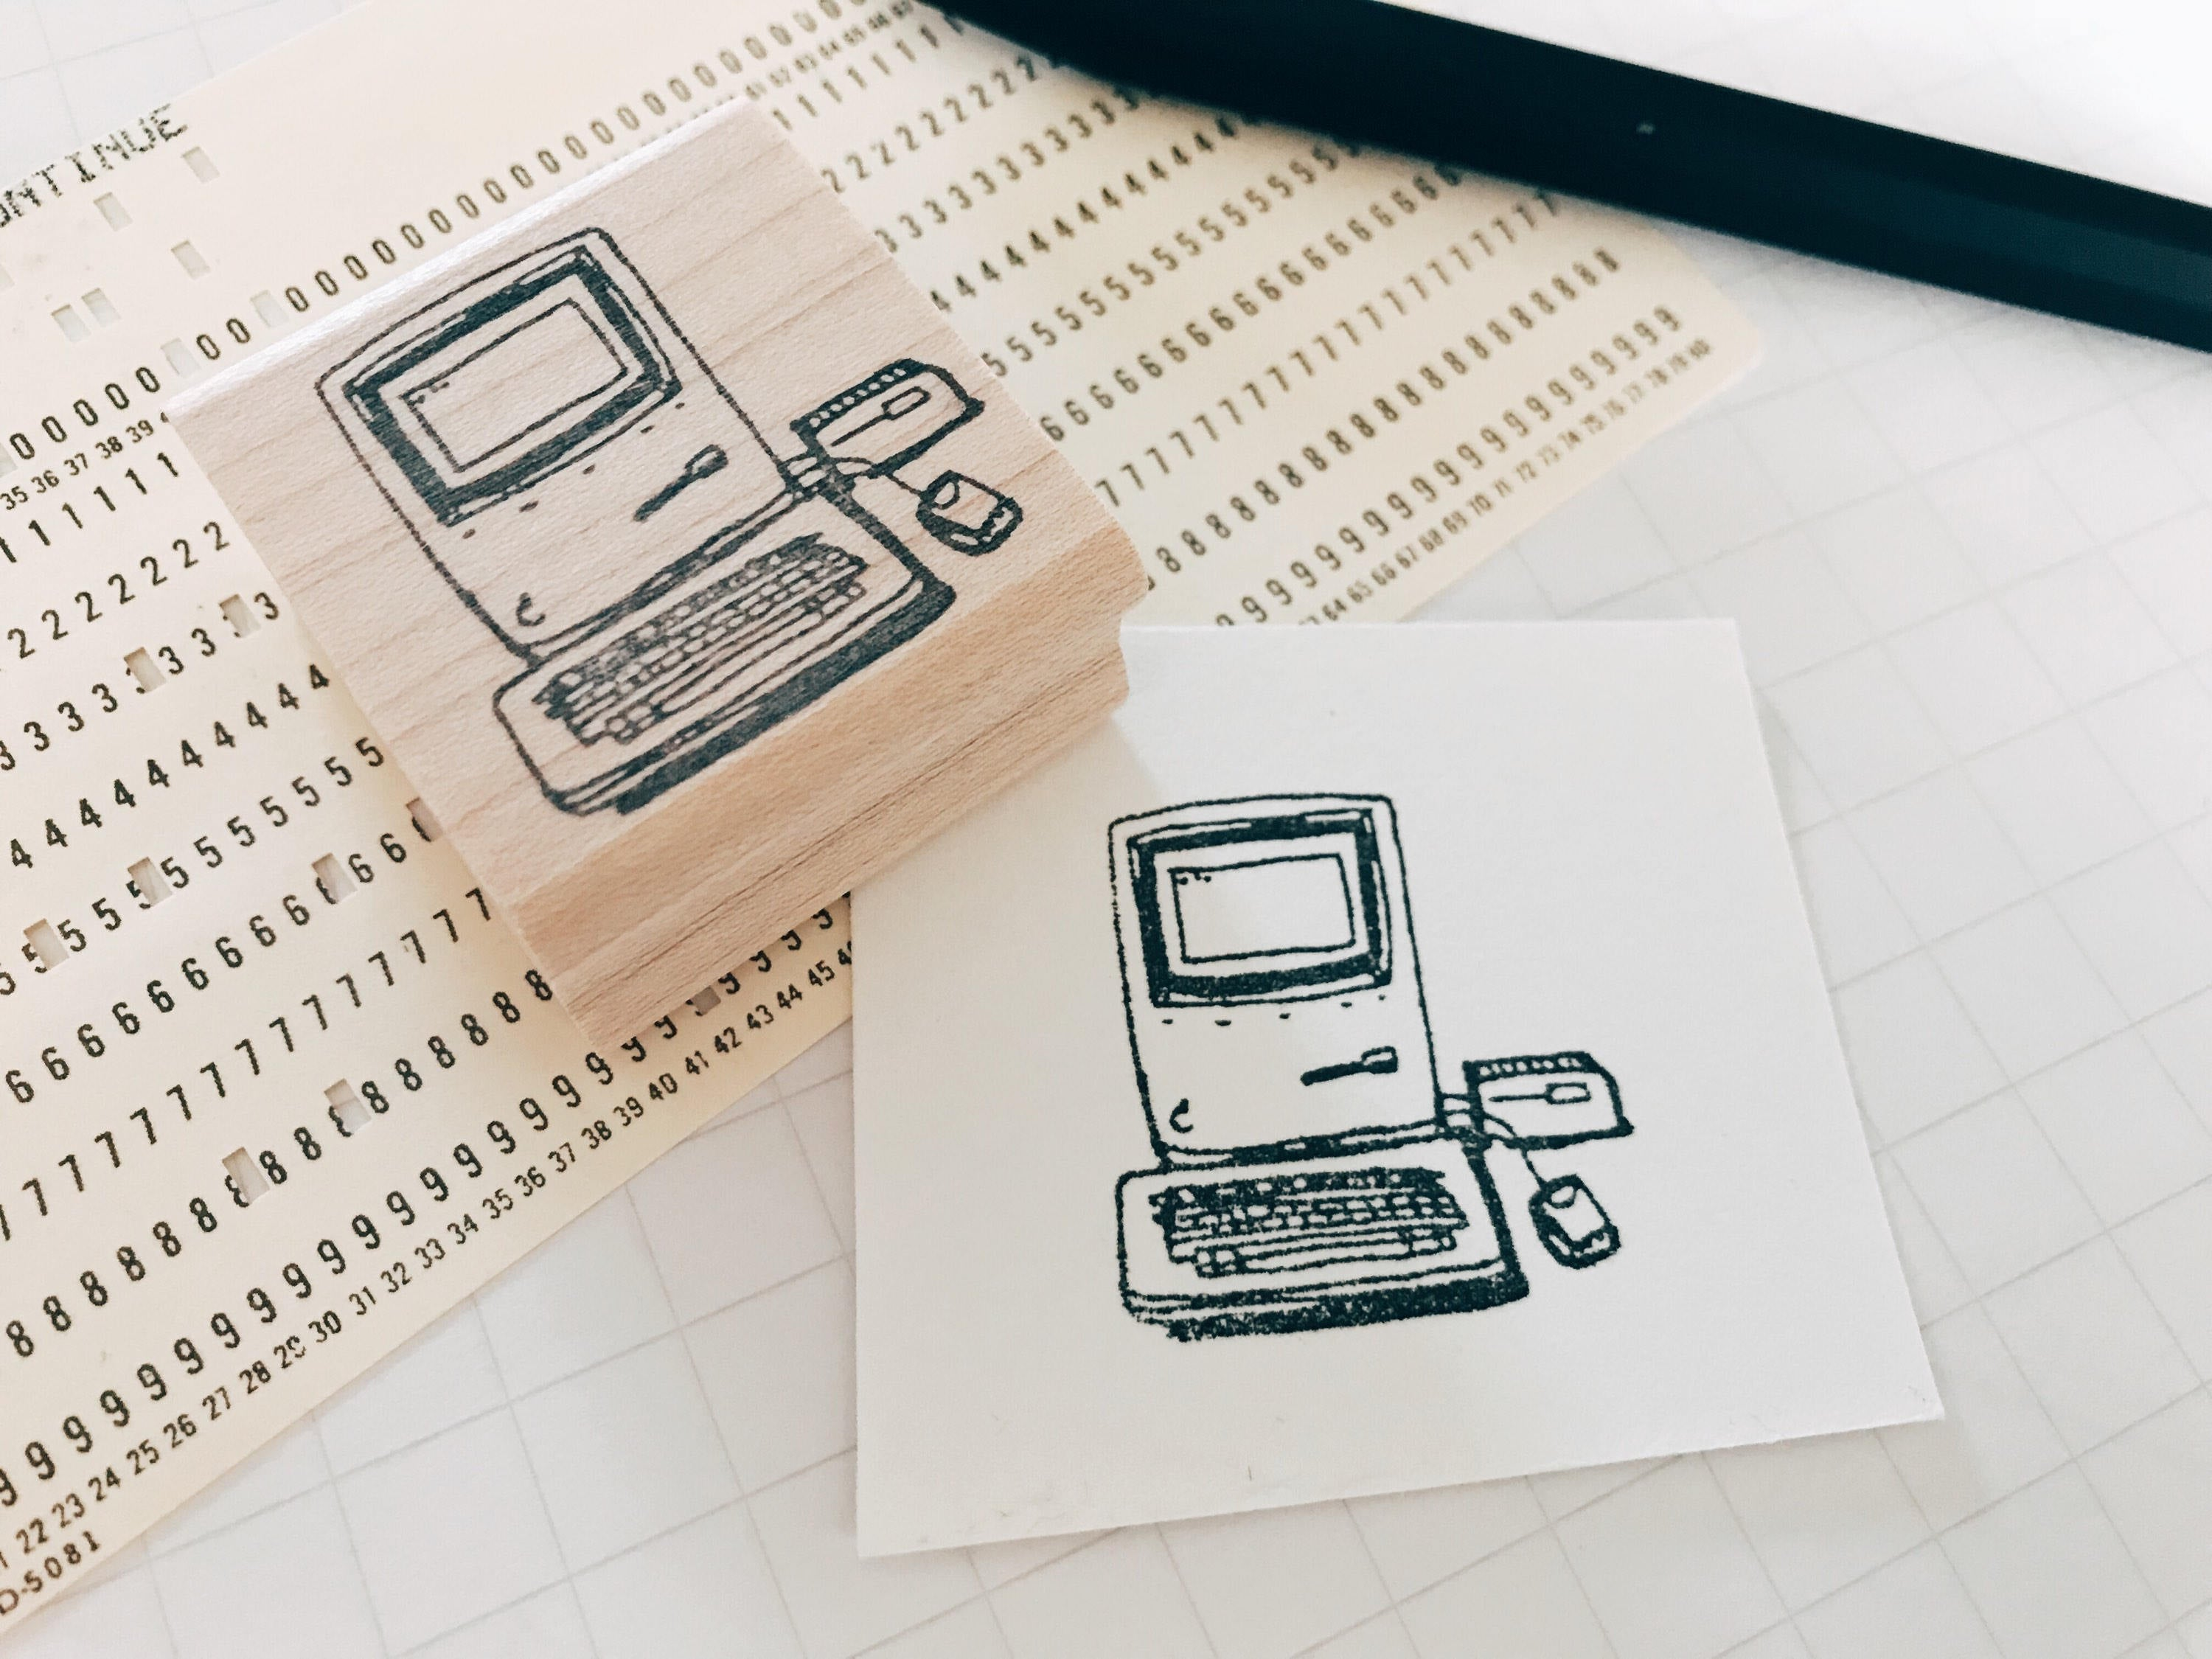 The Retro Mac- Retro/ Vintage Illustration Rubber Stamp - Hipster Pen Pal Stationary Stamp